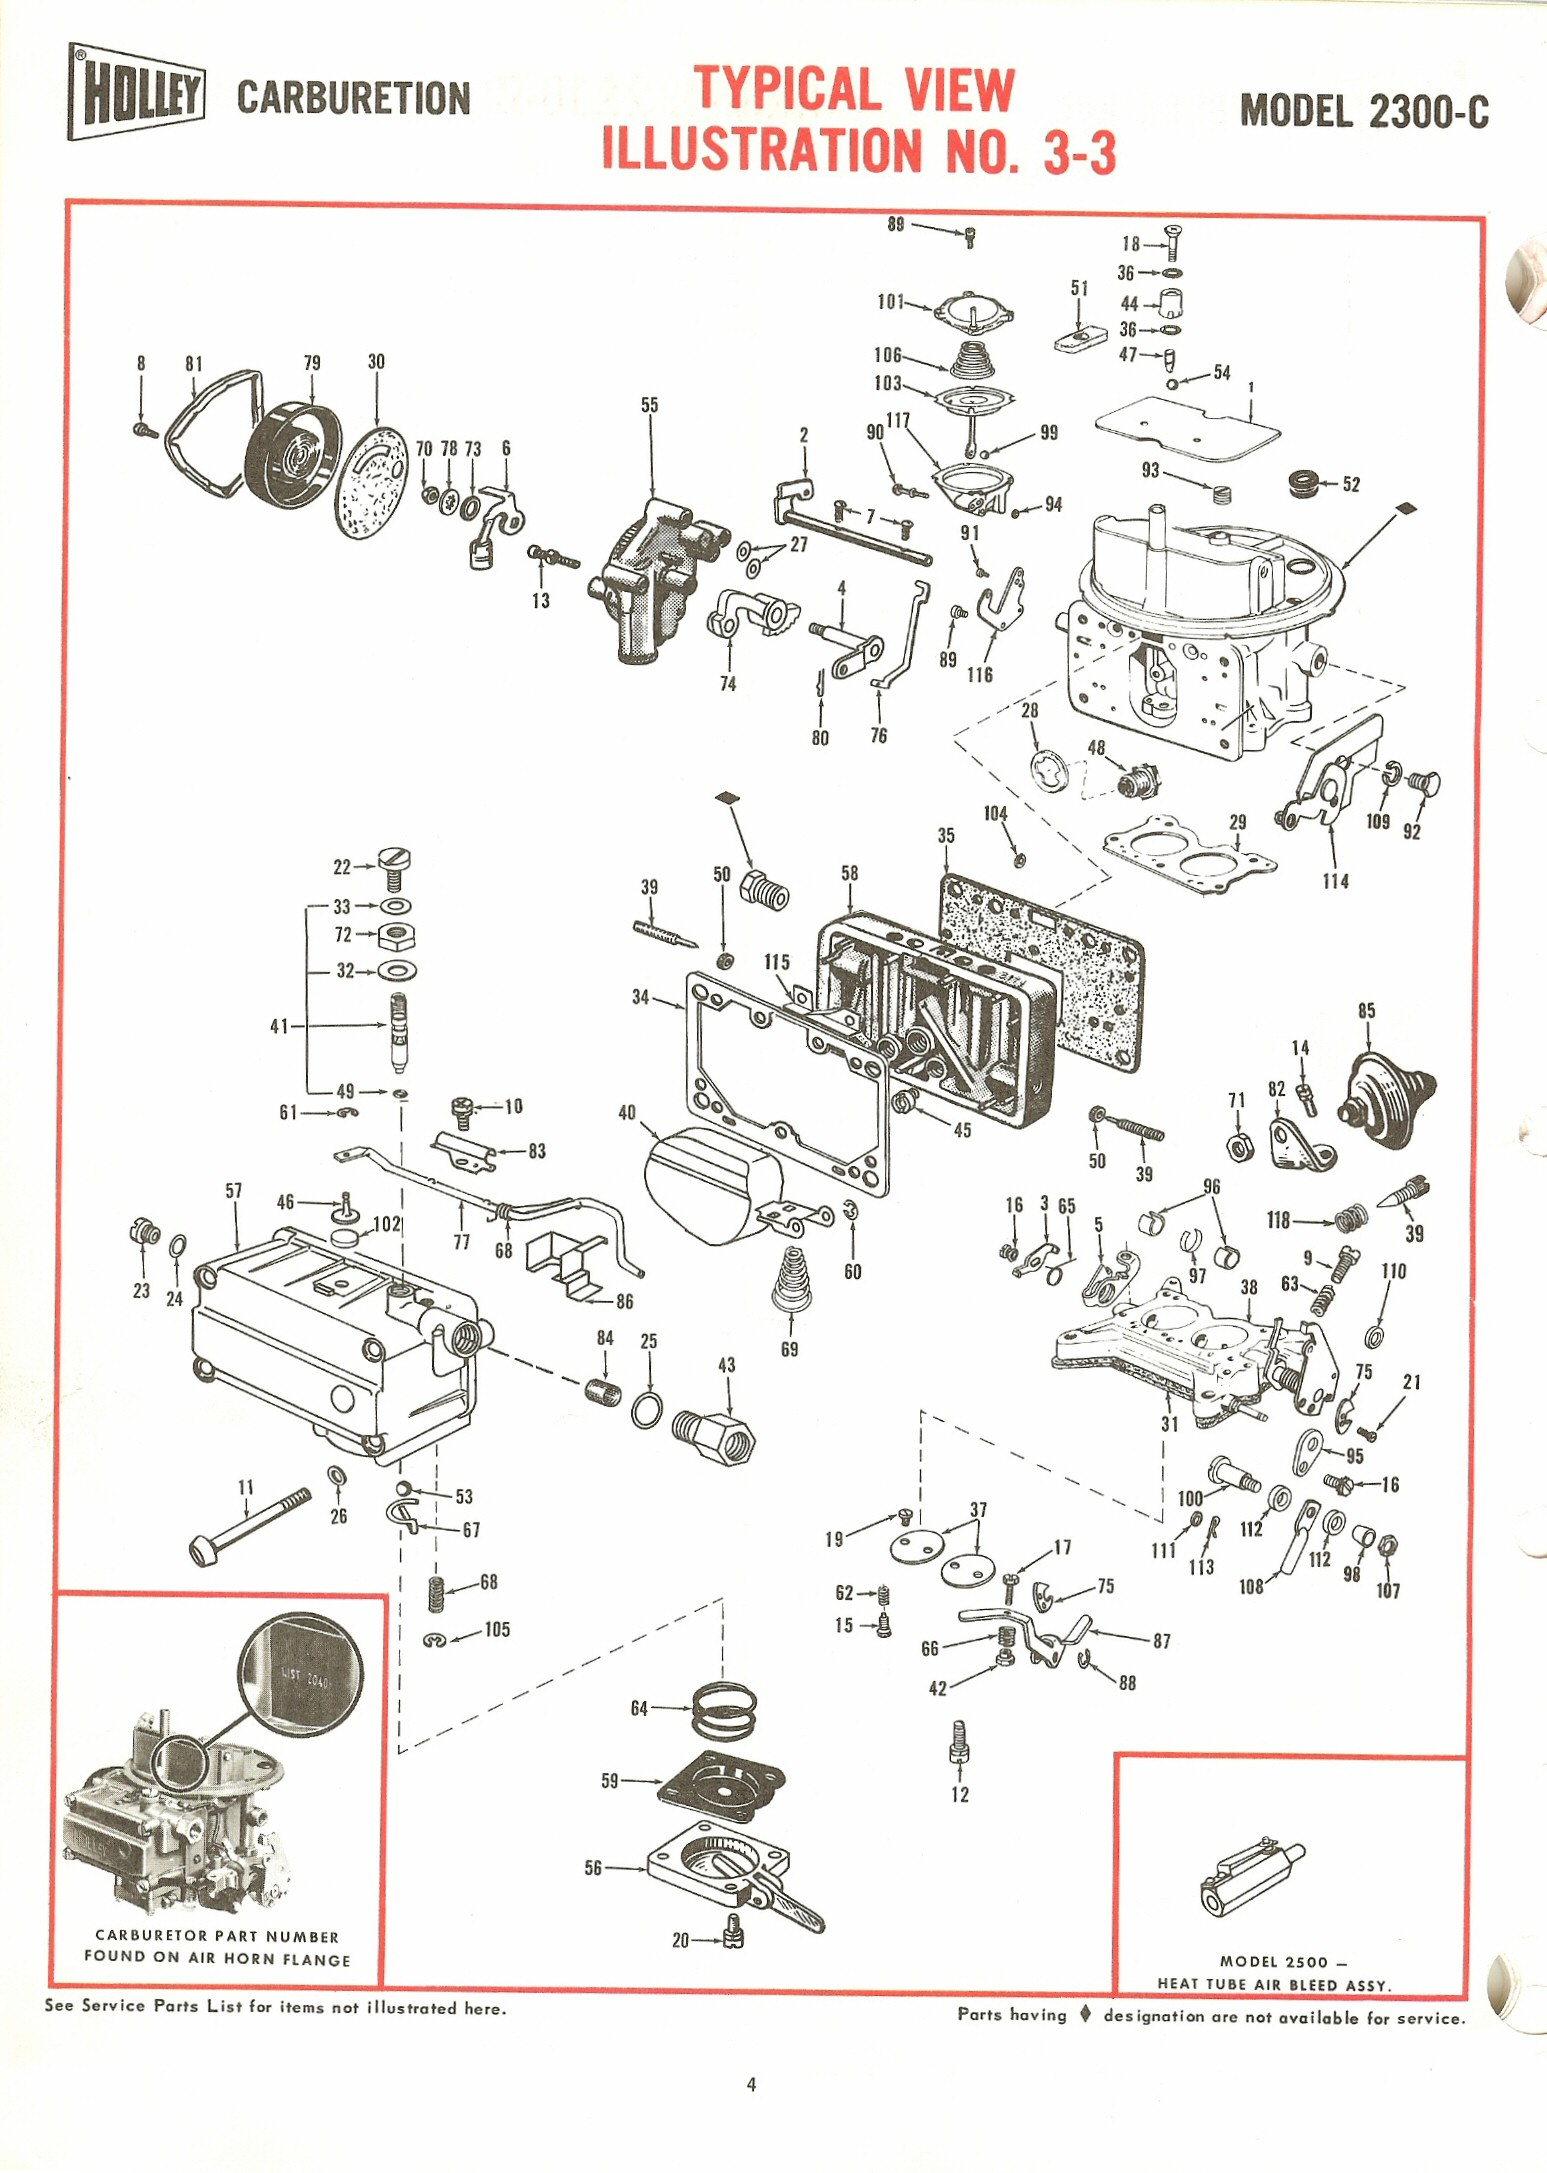 Holley C Exploded Diagrams